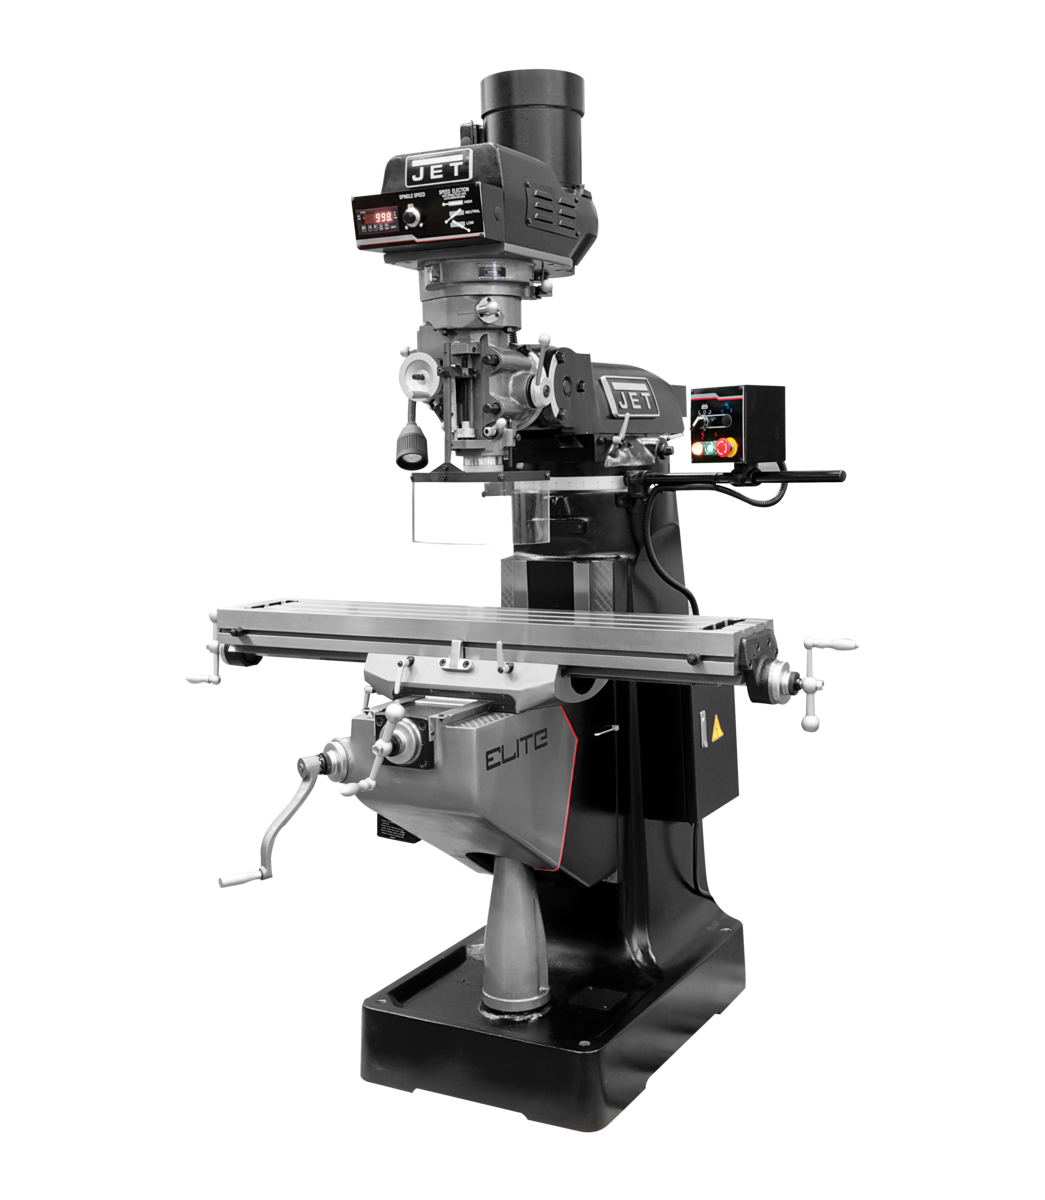 EVS-949 Mill with 3-Axis ACU-RITE 303(Quill) DRO and Servo X, Y-Axis Powerfeeds and USA Air Powered Draw Bar